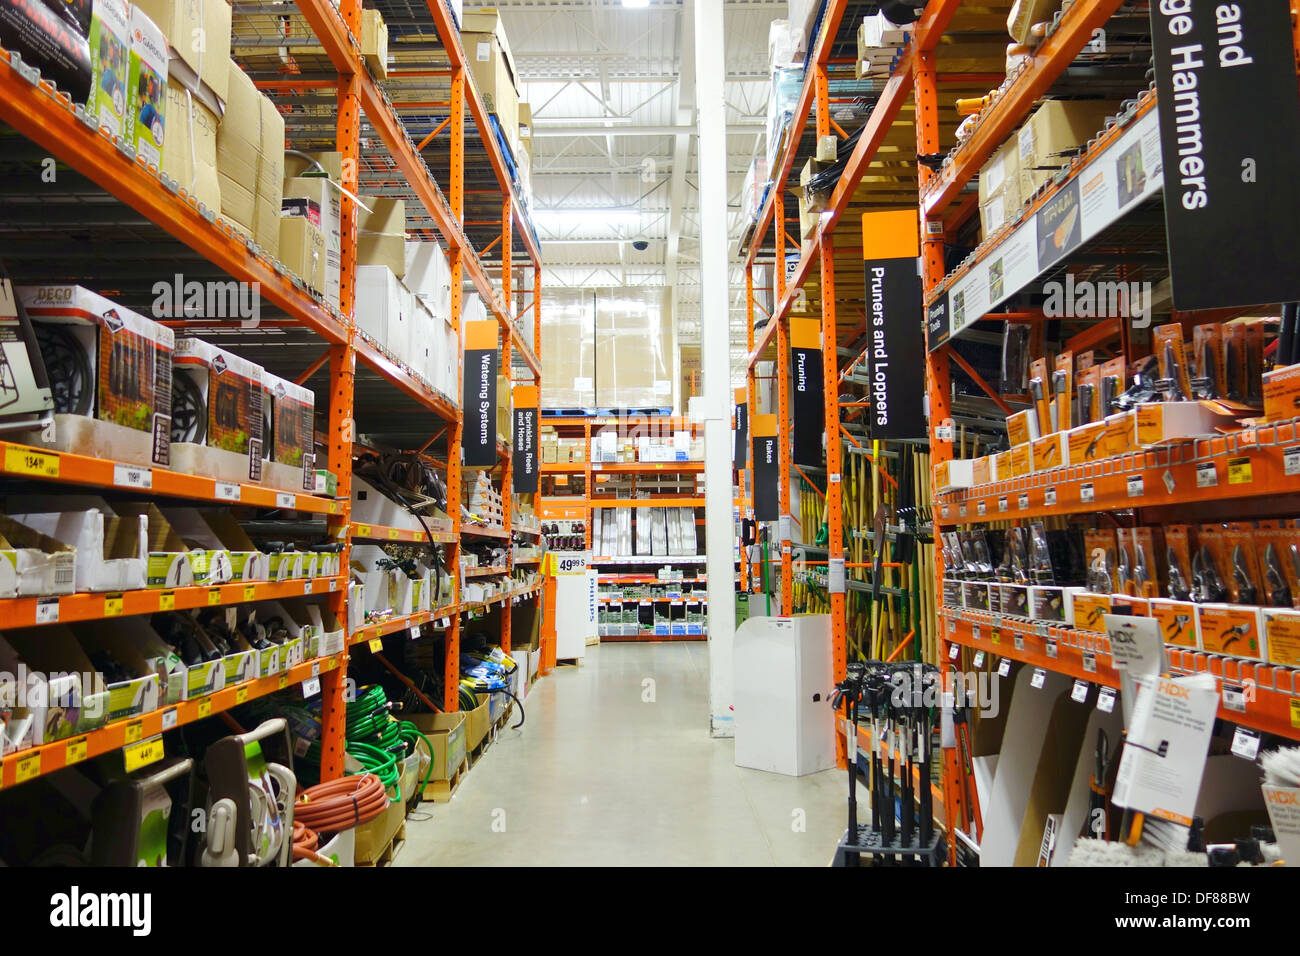 Home Depot Store In Toronto Canada Stock Photo 61033165